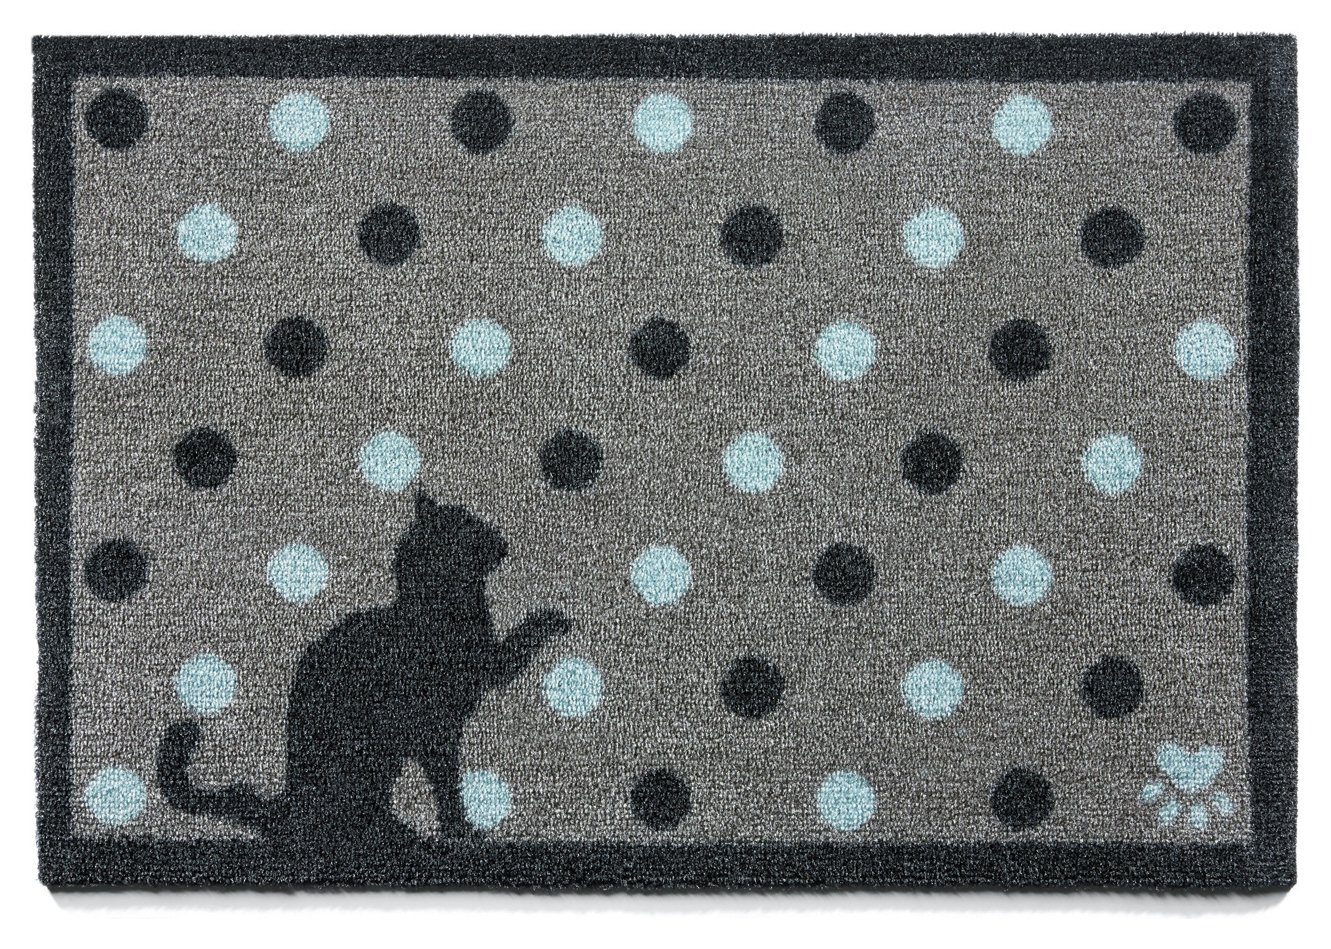 howler-scratch-cat-spot-doormat-75x50cm-multi